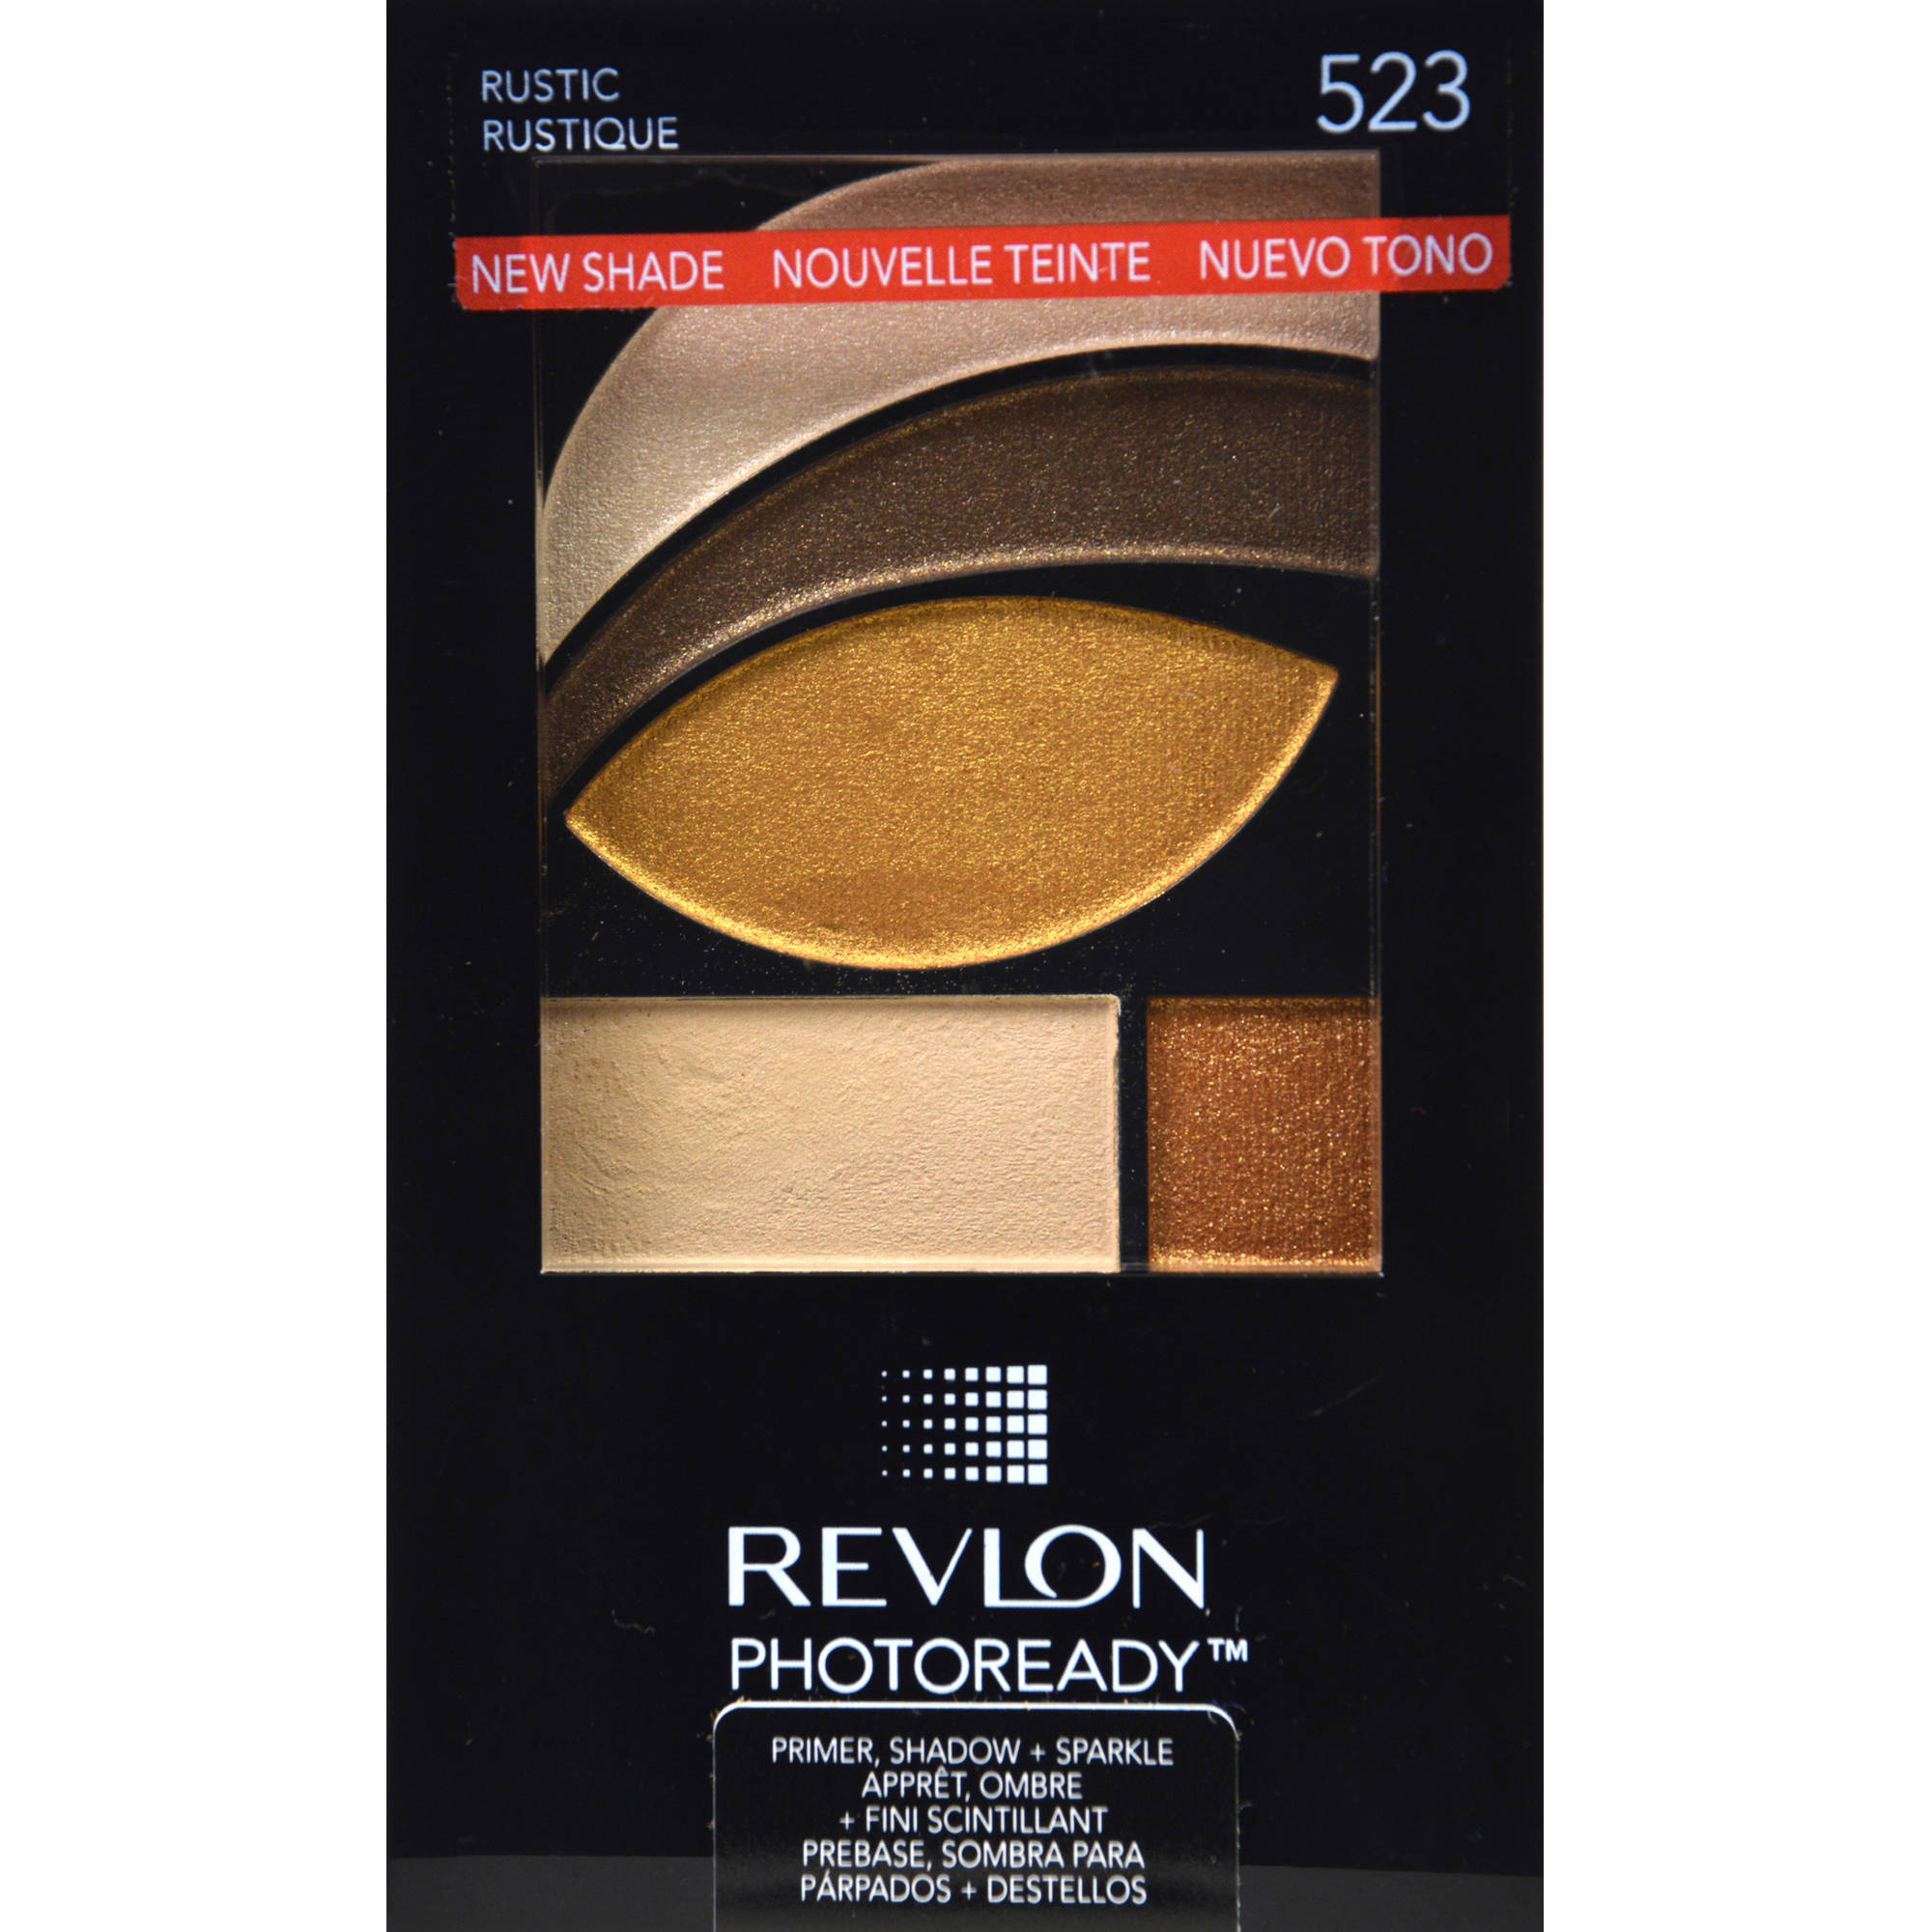 Revlon PhotoReady Primer, Shadow + Sparkle Pallette, 0.1 oz